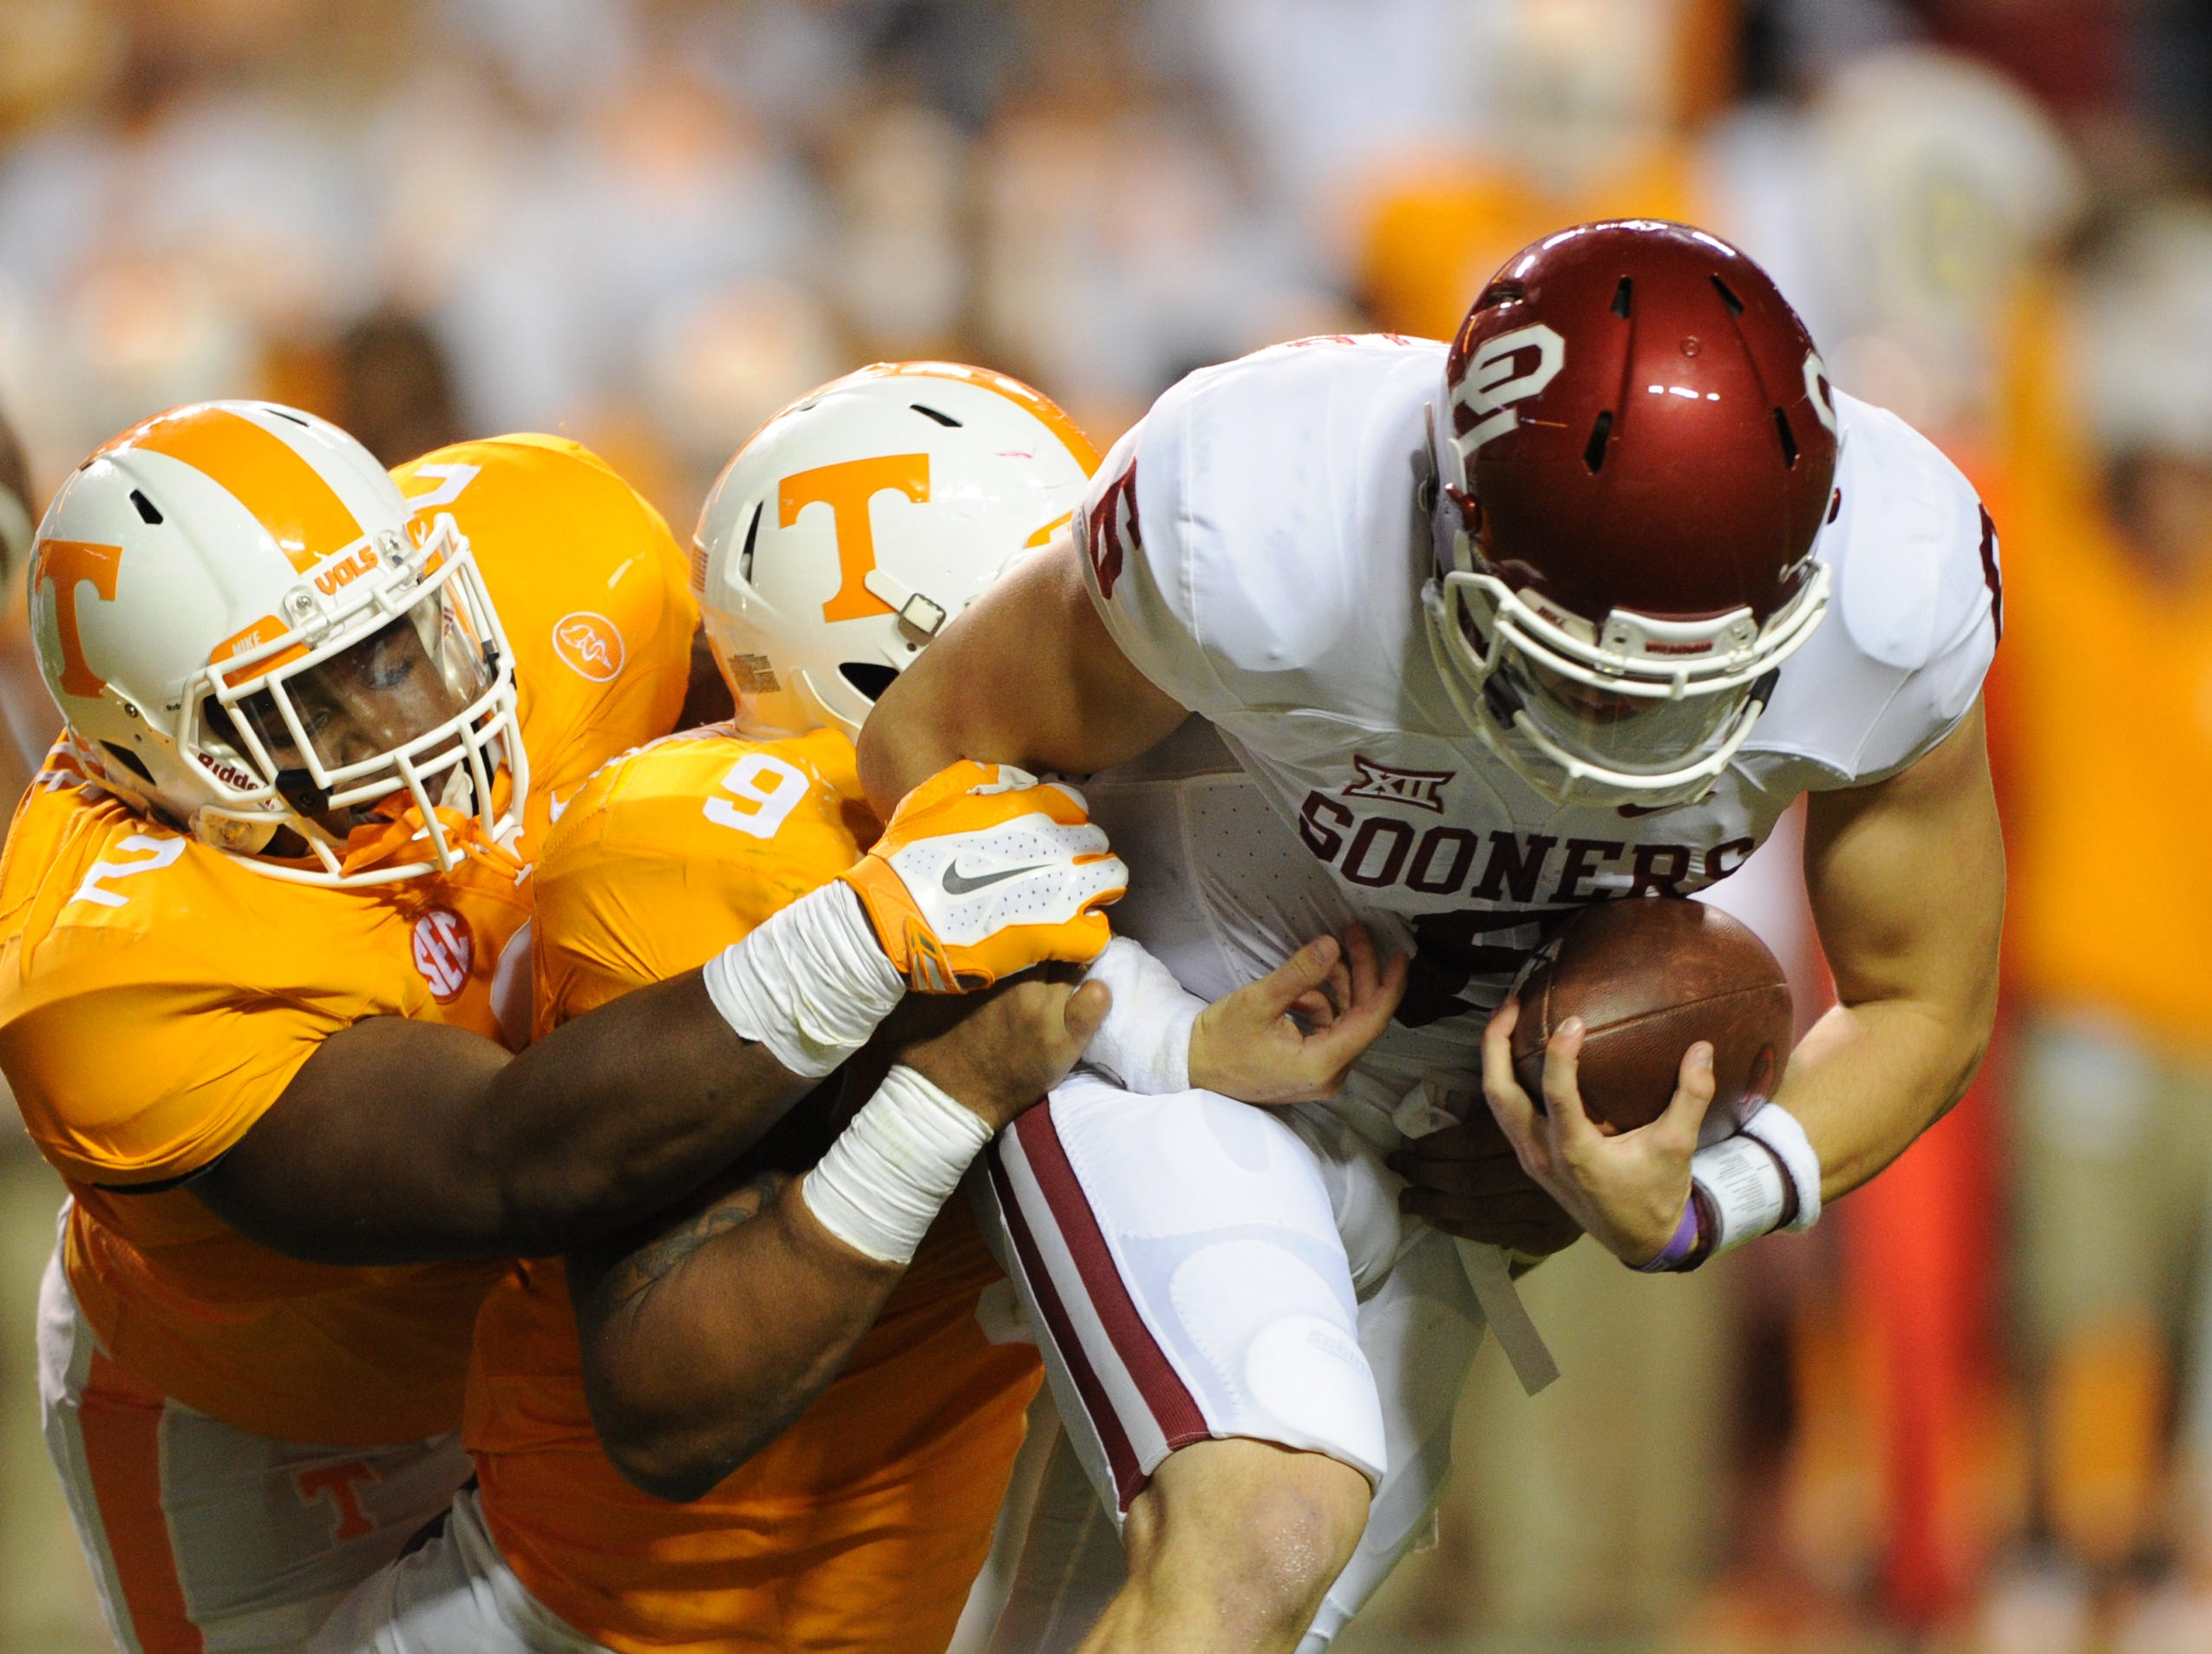 Tennessee defensive lineman Shy Tuttle (2) and defensive end Derek Barnett (9) sack Oklahoma quarterback Baker Mayfield during the second half at Neyland Stadium on Saturday, Sept. 12, 2015 in Knoxville, Tenn.